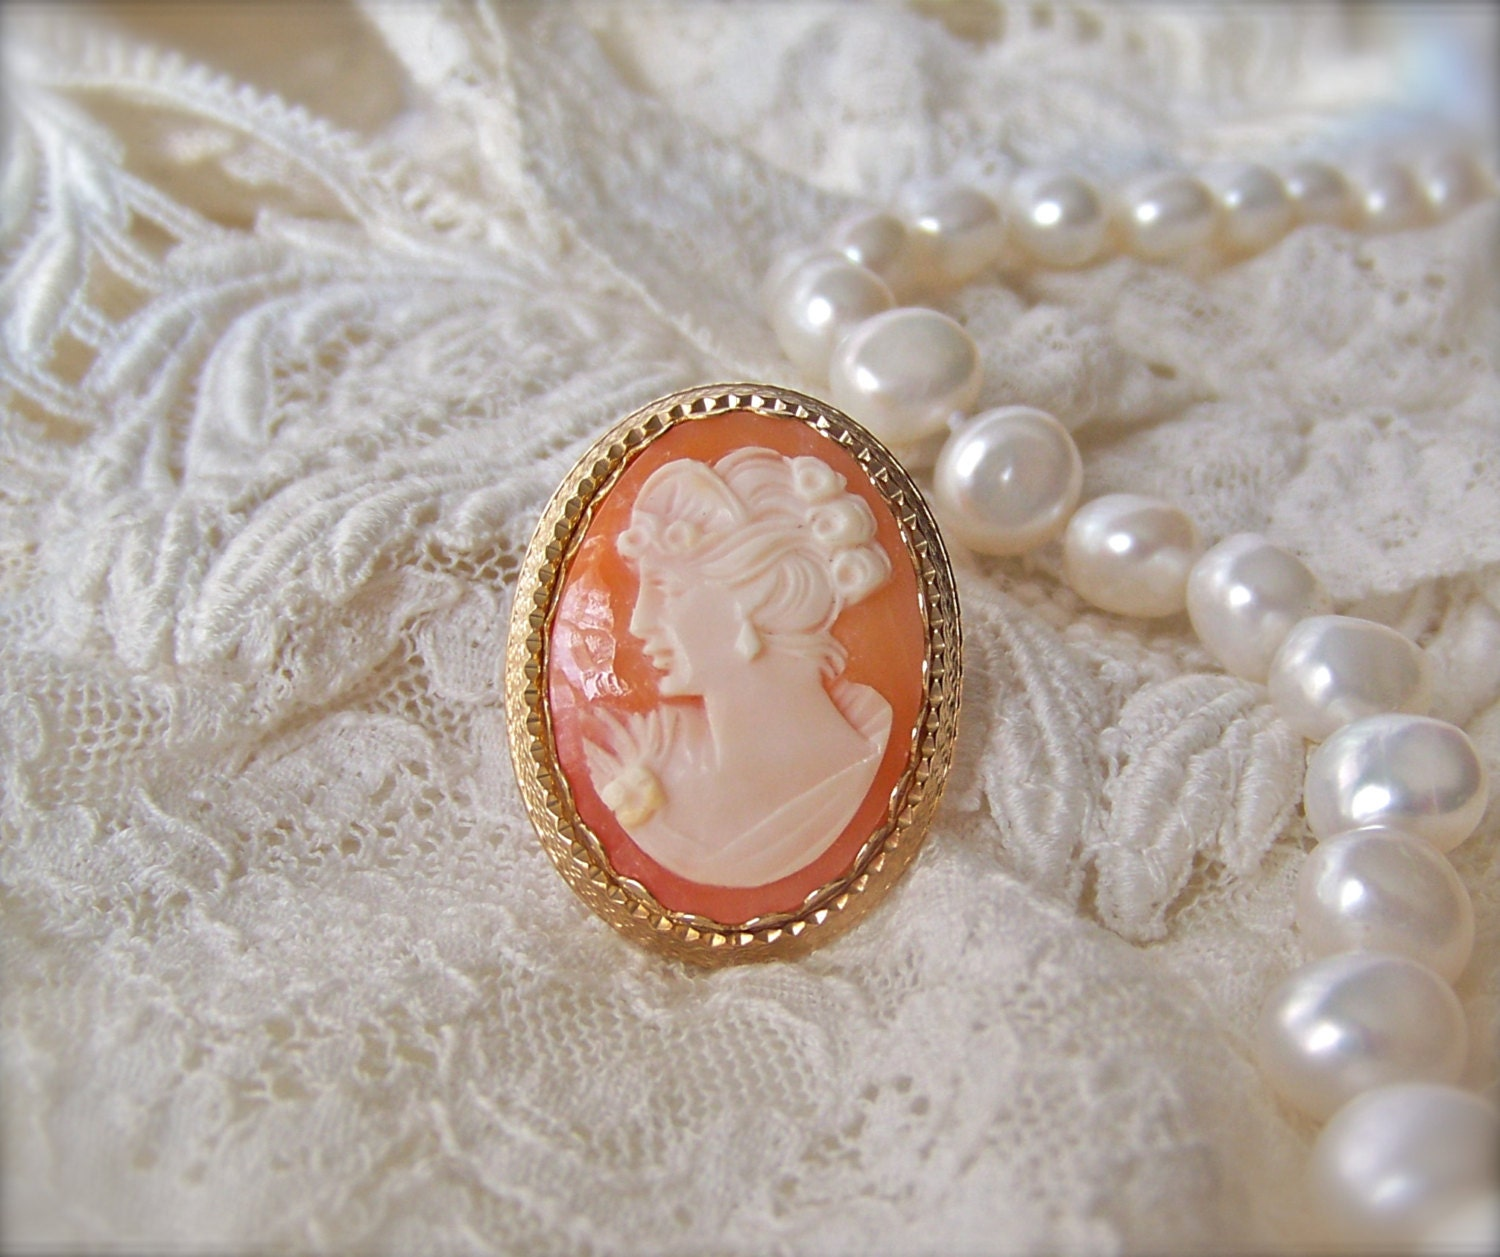 antique cameo brooch pendant 14kgf carved by